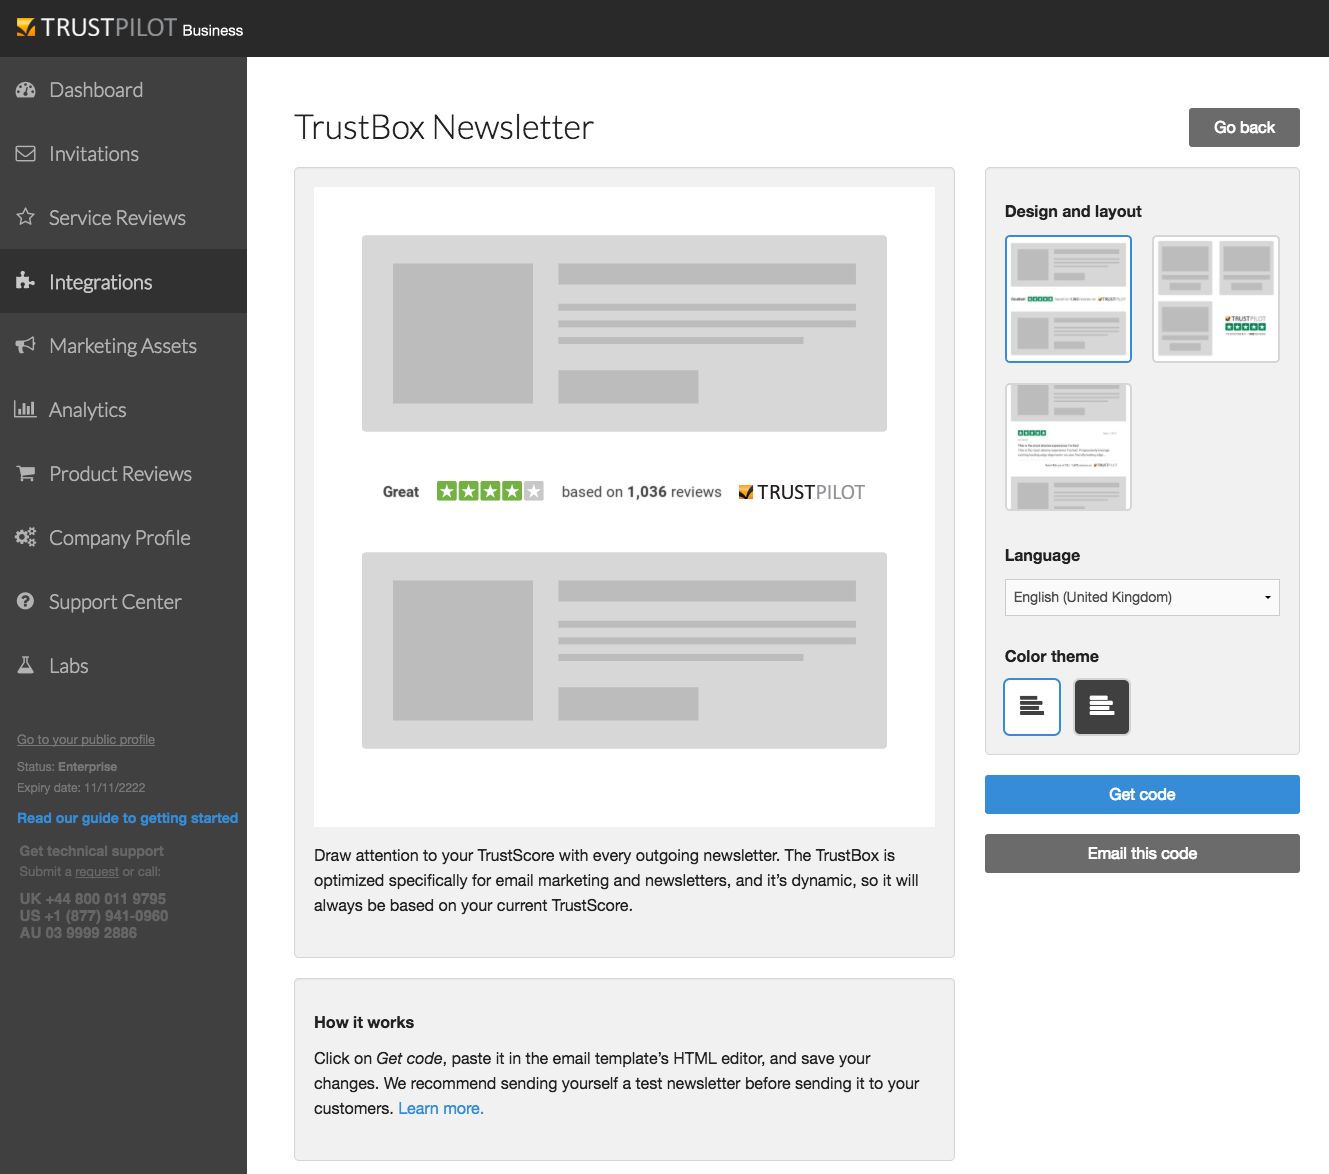 How to add the TrustBox Newsletter to your email campaigns ...